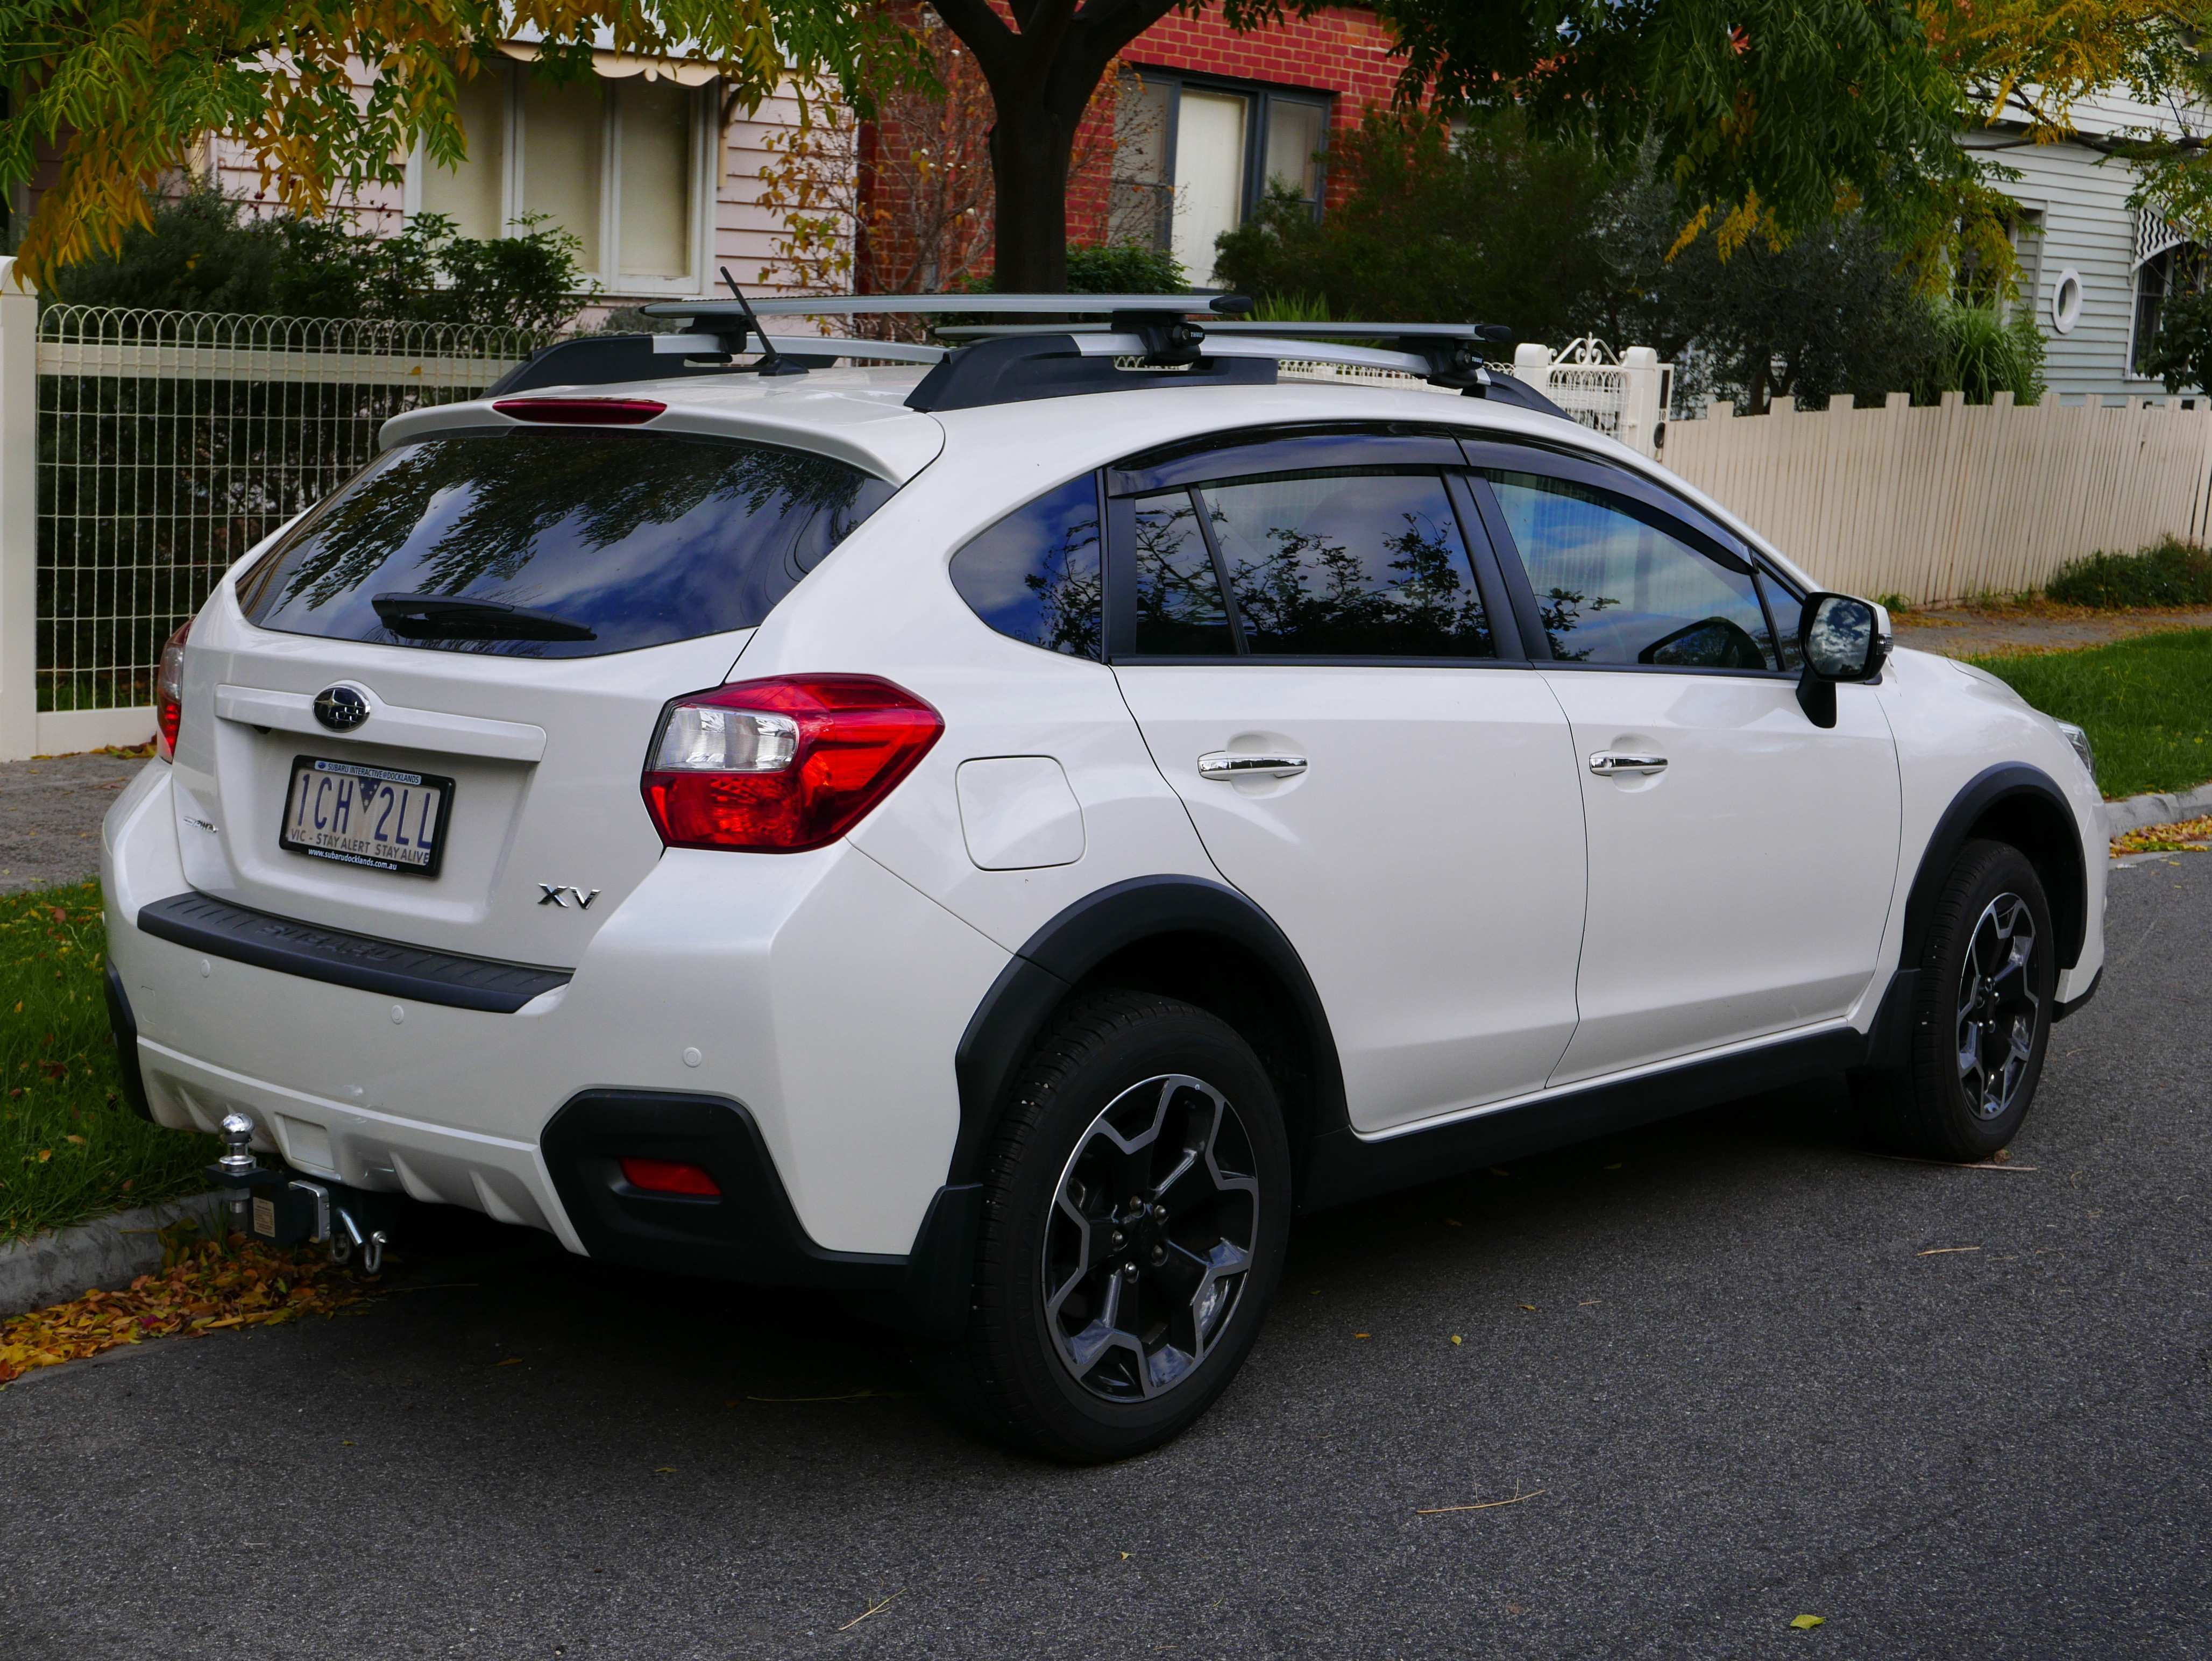 64 All New Subaru Xv Turbo 2019 Overview